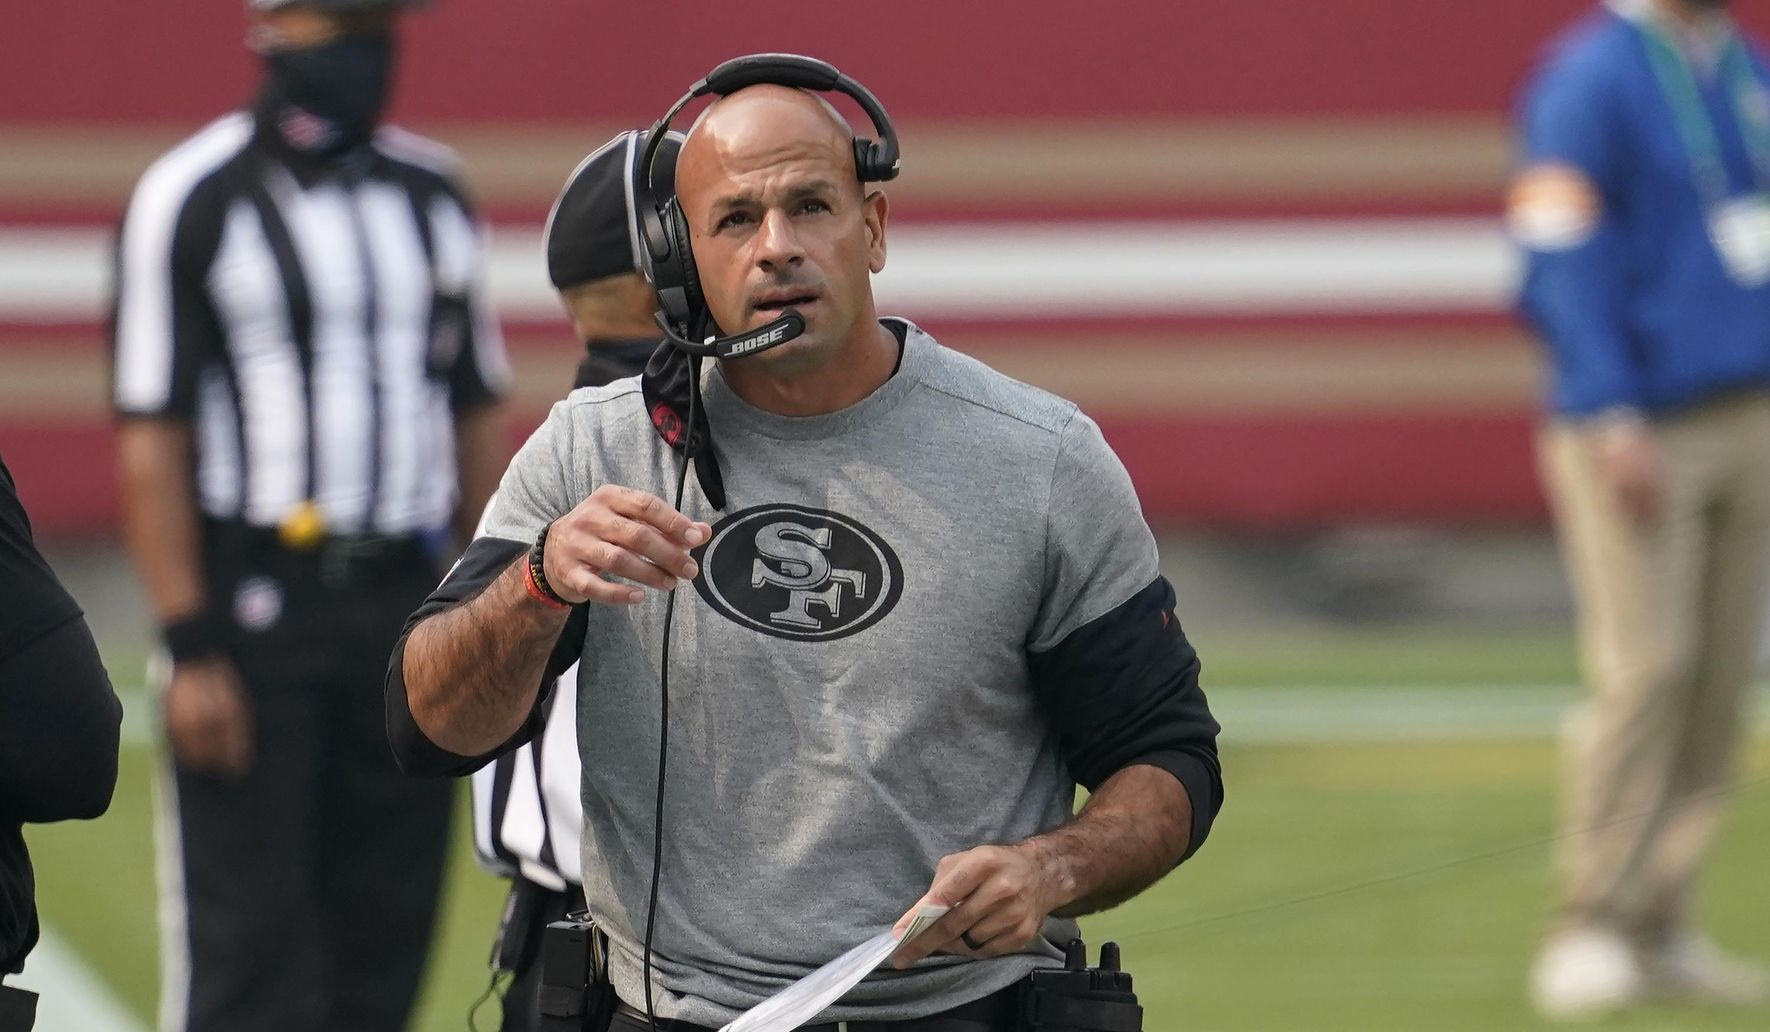 Jets_coaching_search_football_96508_c0-0-3000-1749_s1770x1032